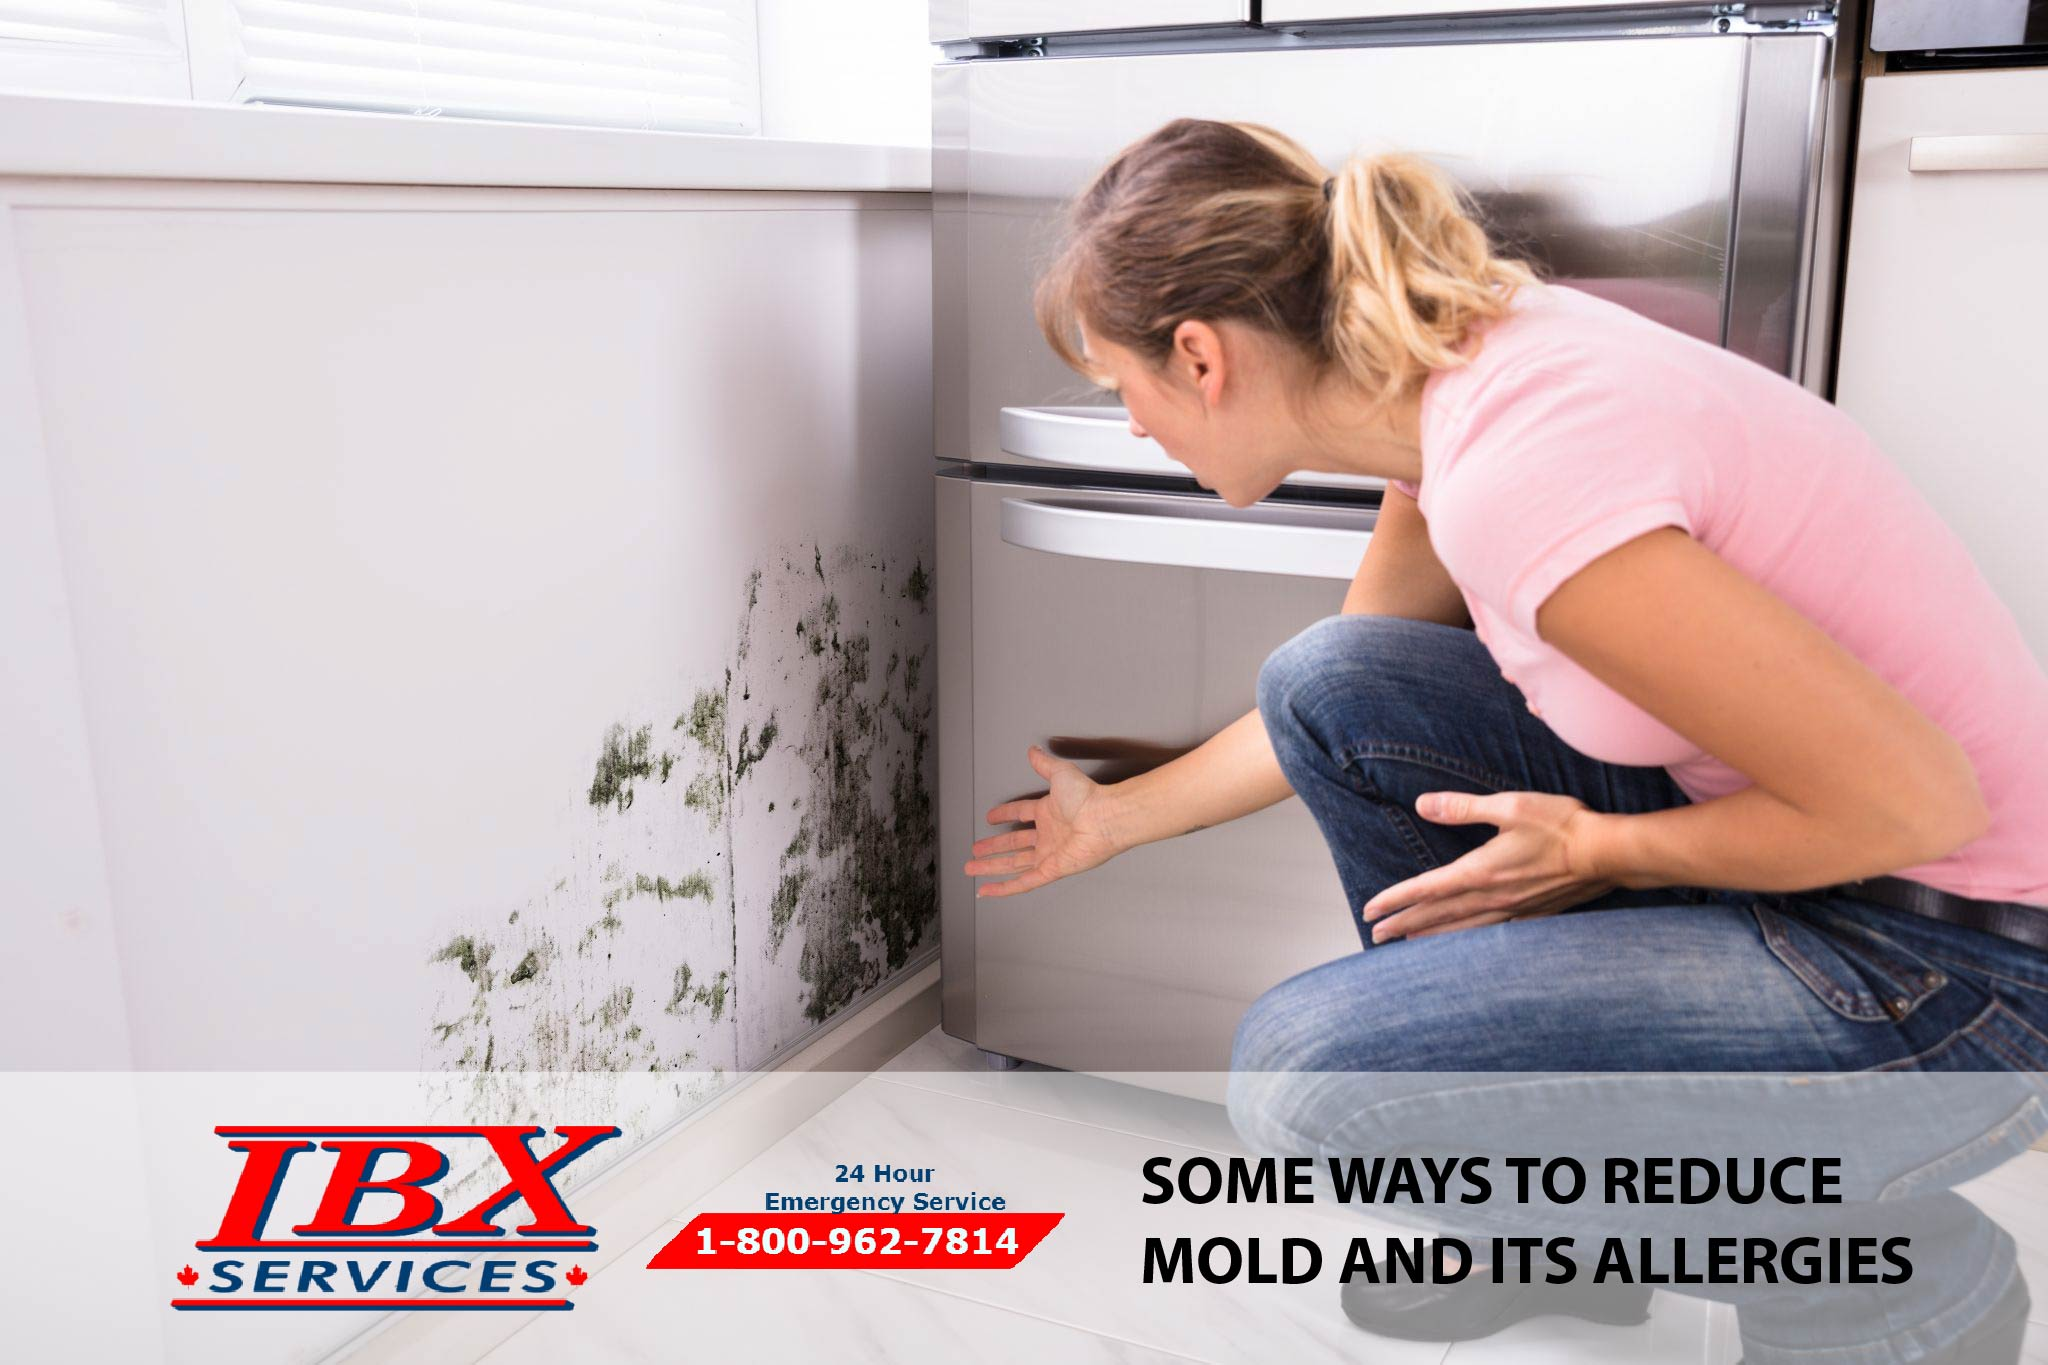 Some Ways To Reduce Mold and Its Allergies